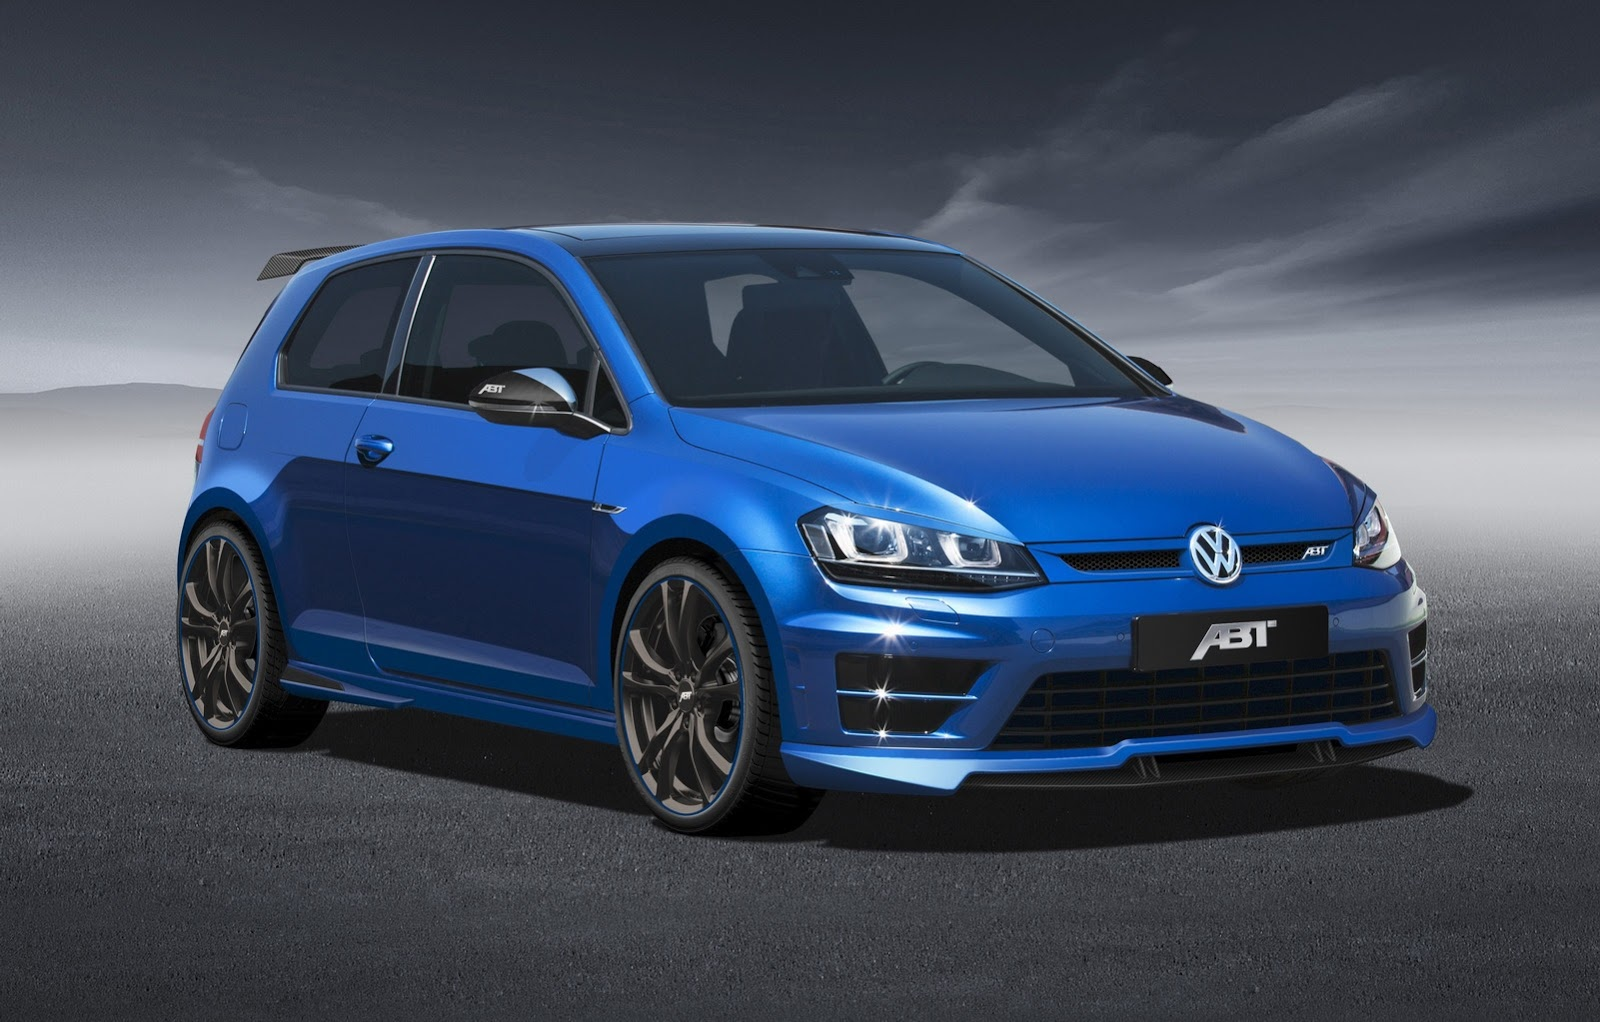 abt previews its 365hp volkswagen golf r gtspirit. Black Bedroom Furniture Sets. Home Design Ideas